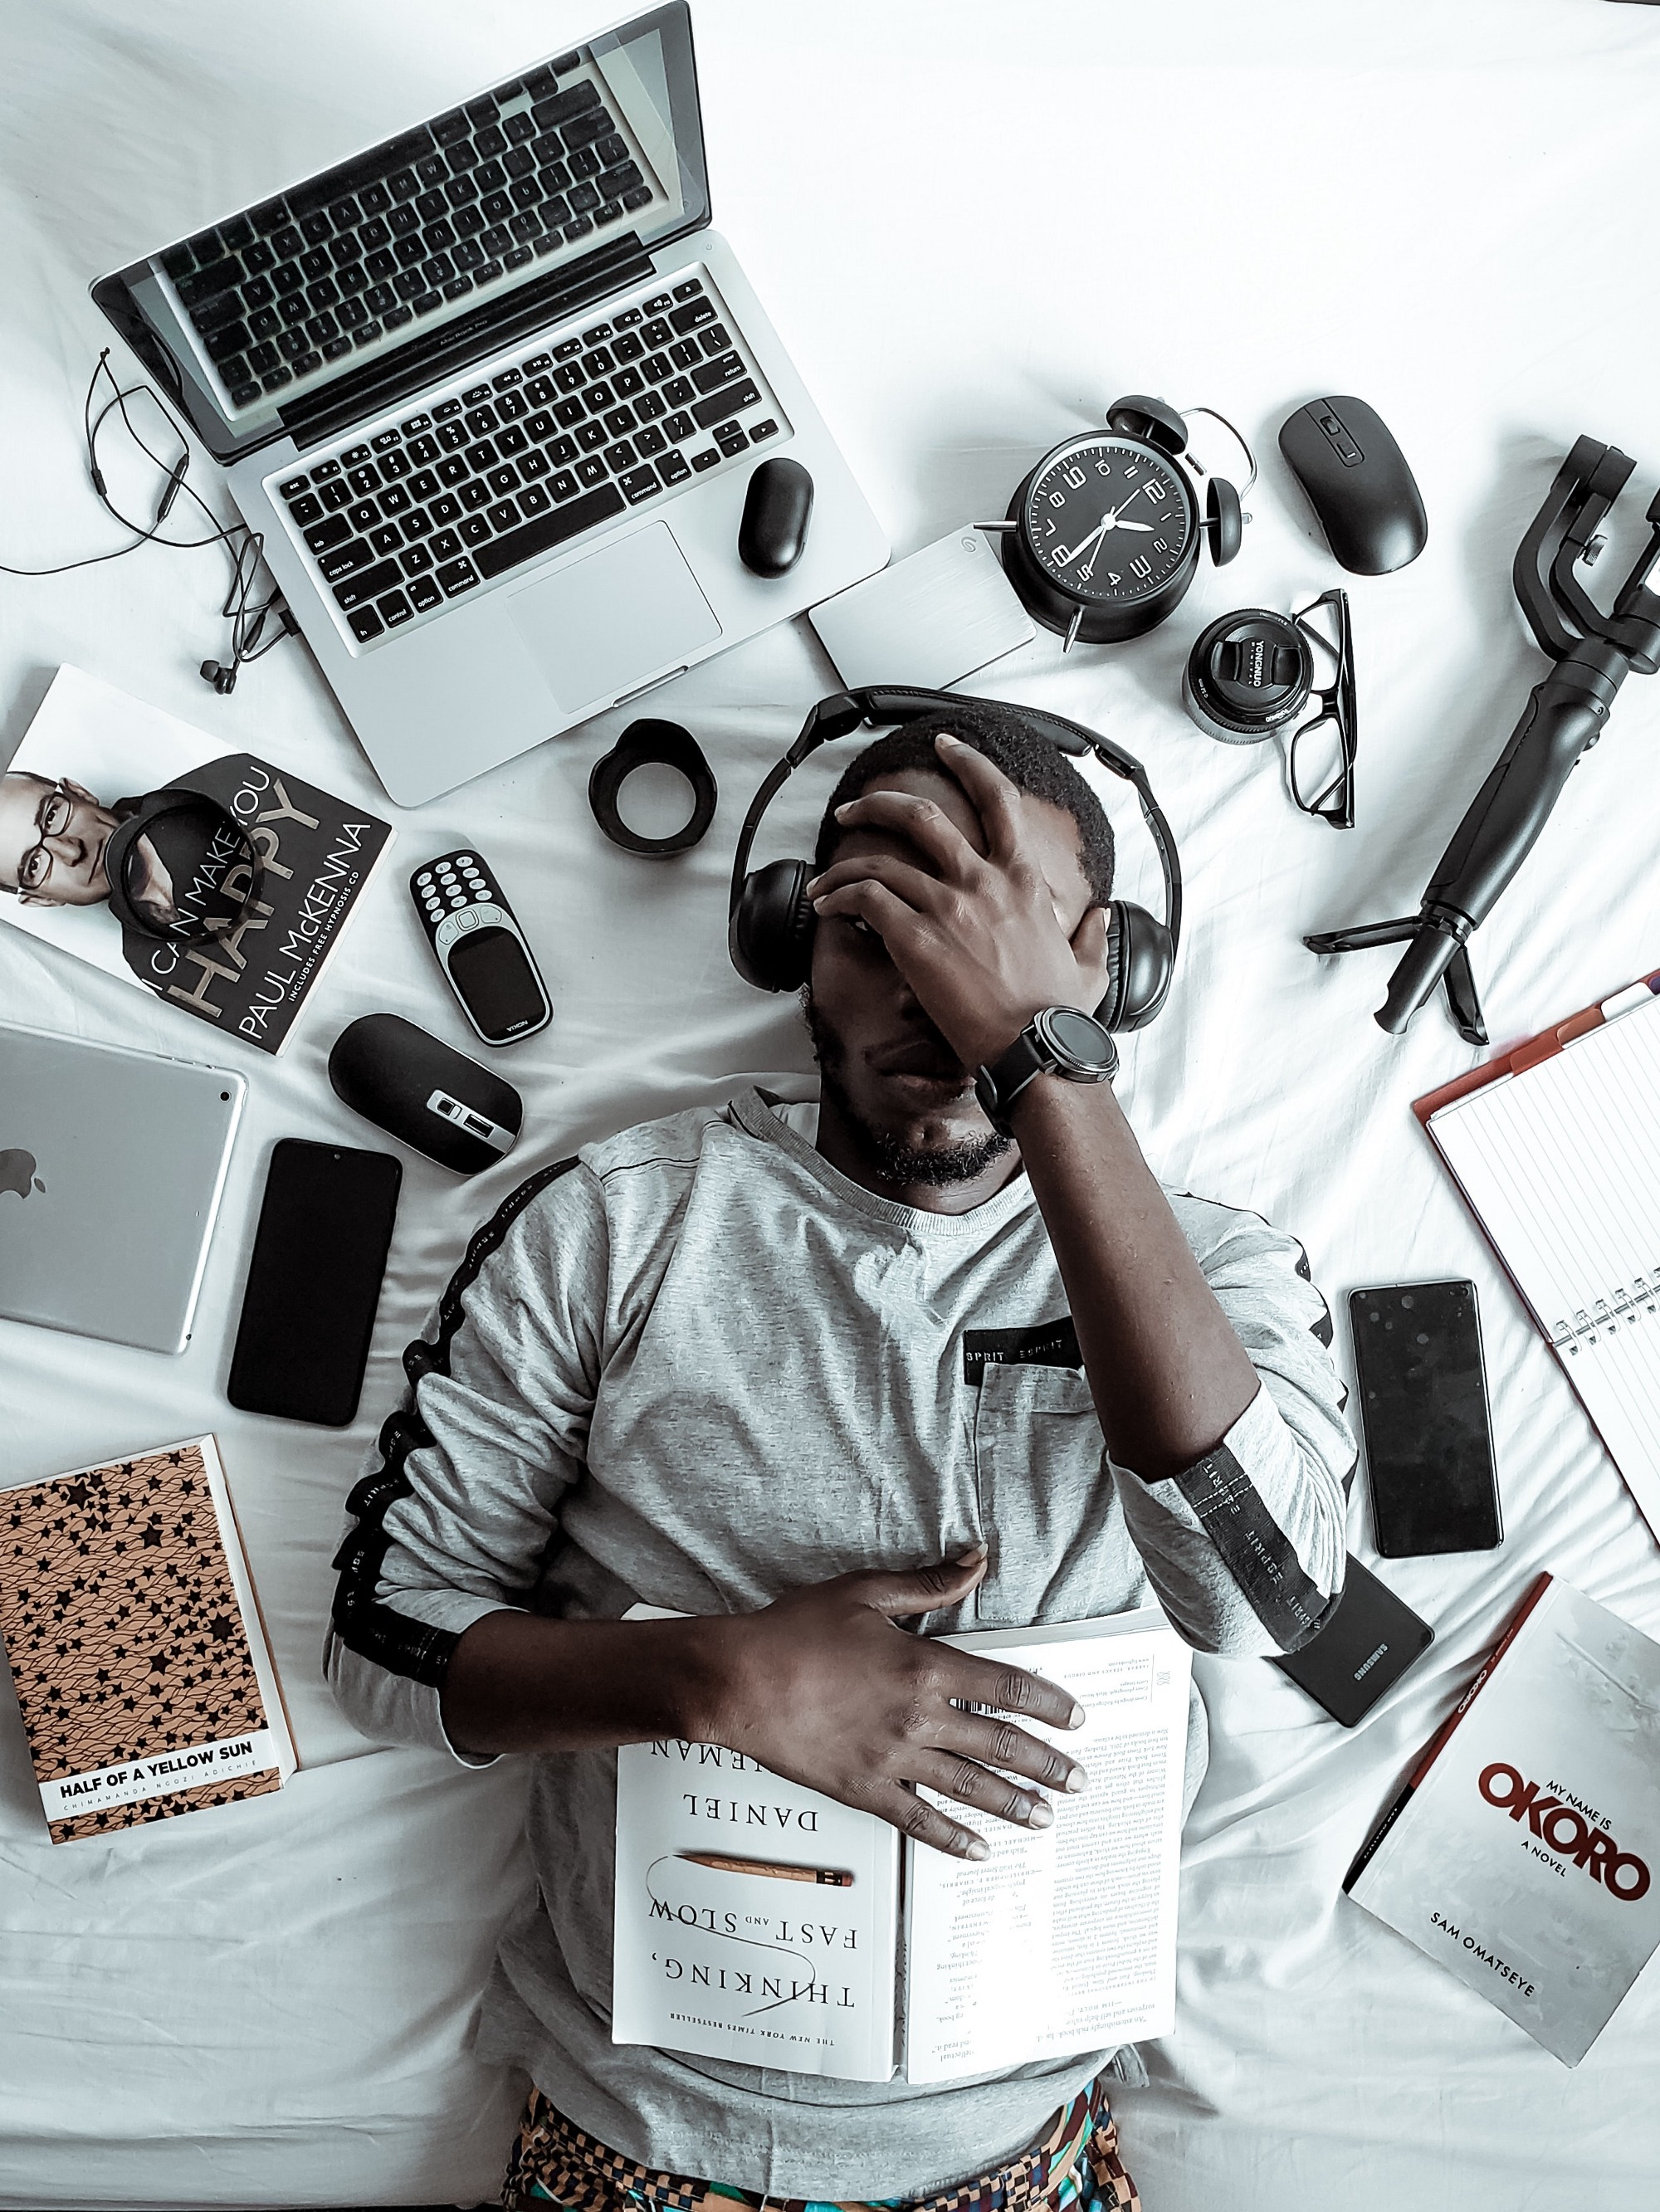 Picture of a man who appears to be overwhelmed, with black headphones on, lyring in a bed, surronded by various books and technology gadgets.